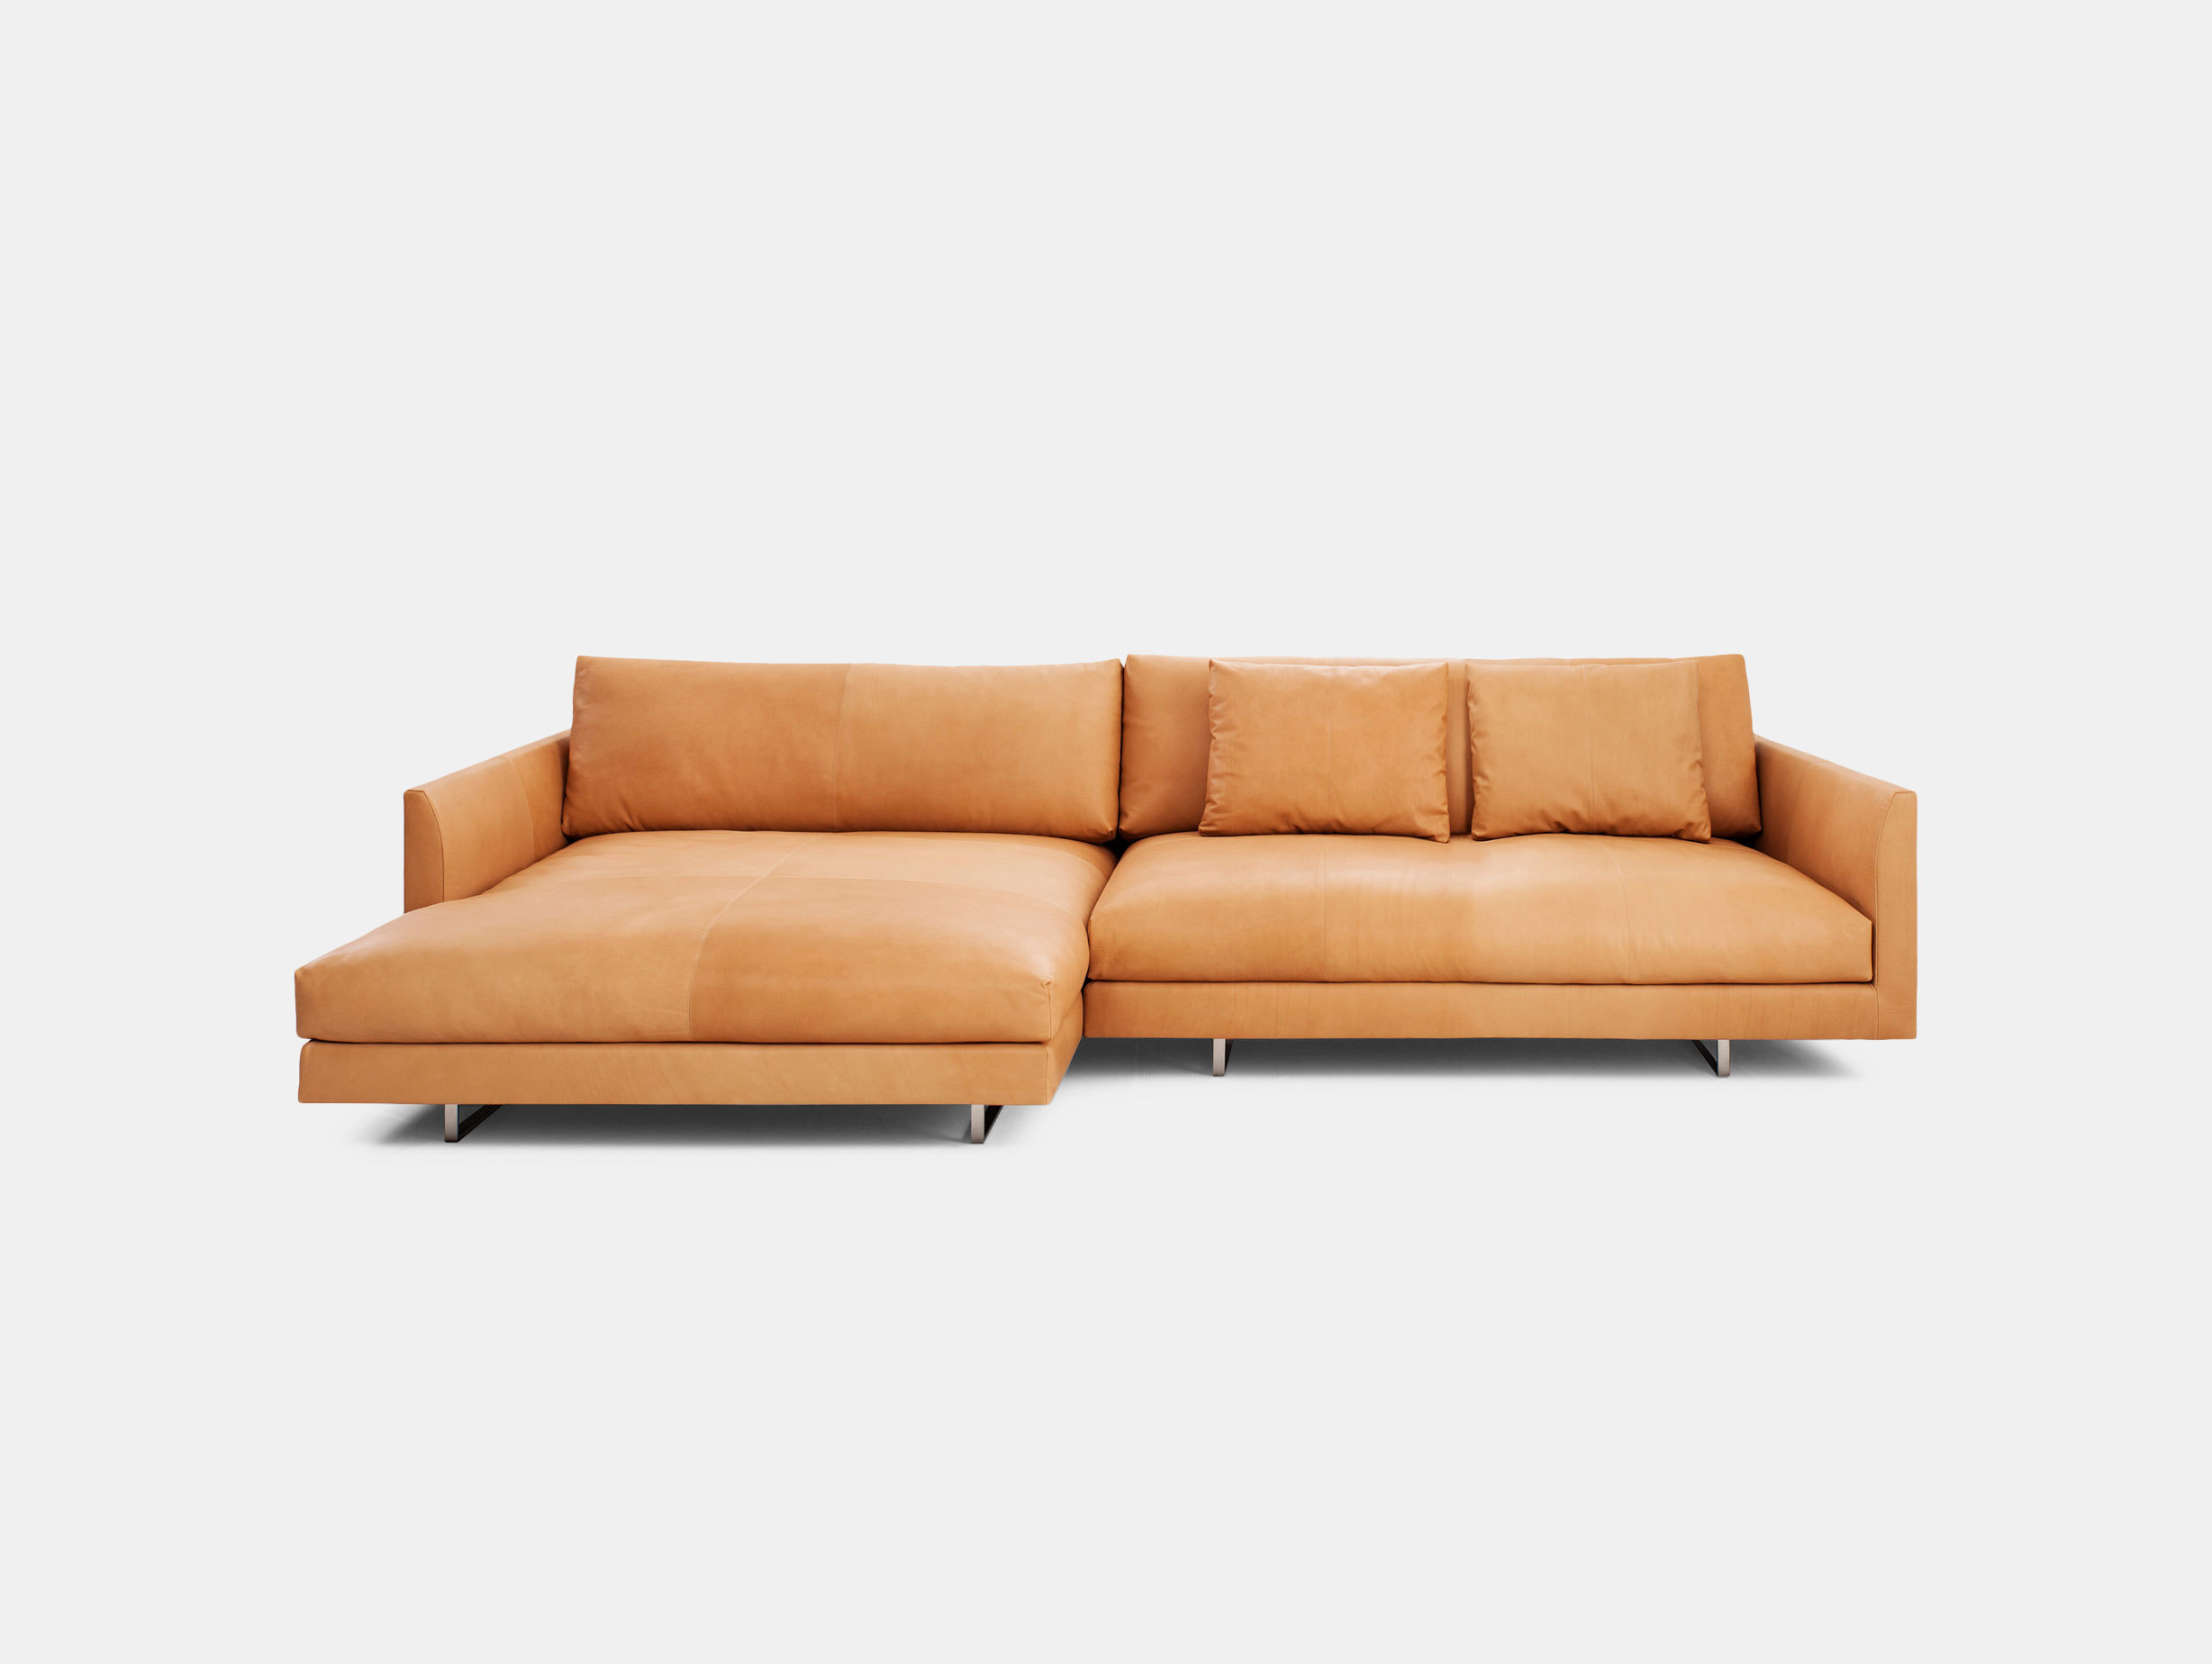 Axel XL Sofa image 1